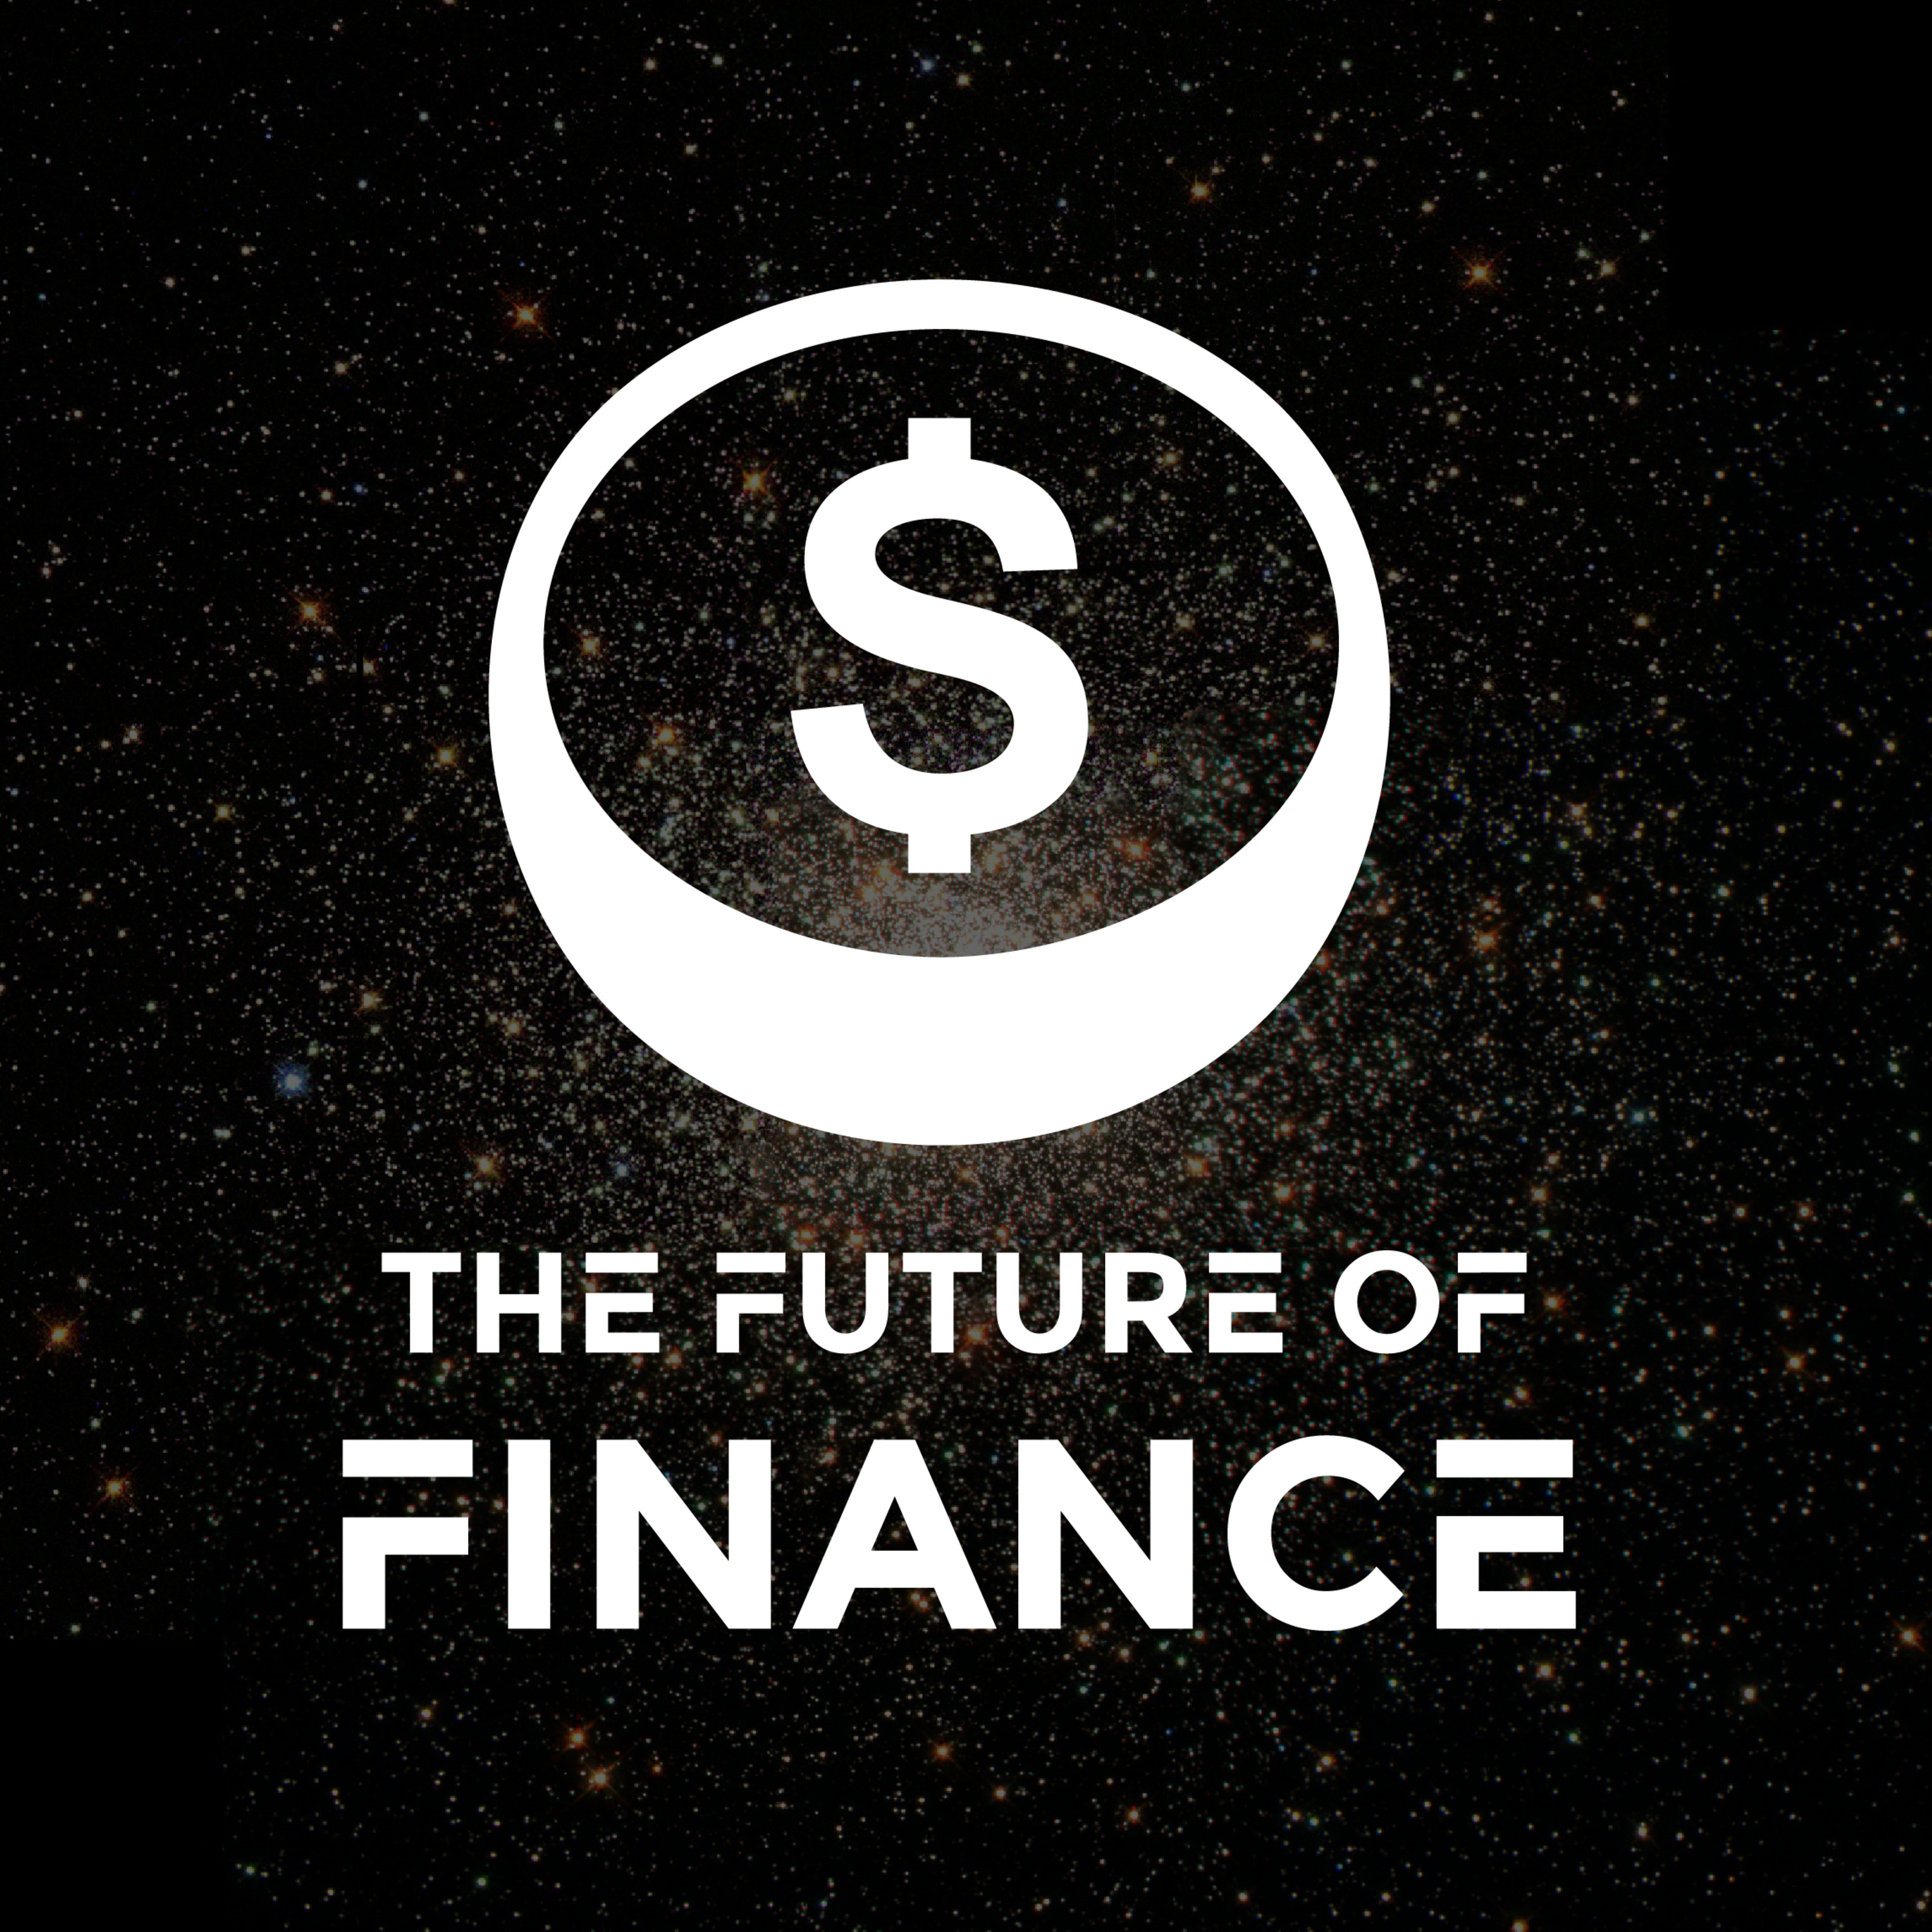 Ep. 40 - The Future of Finance